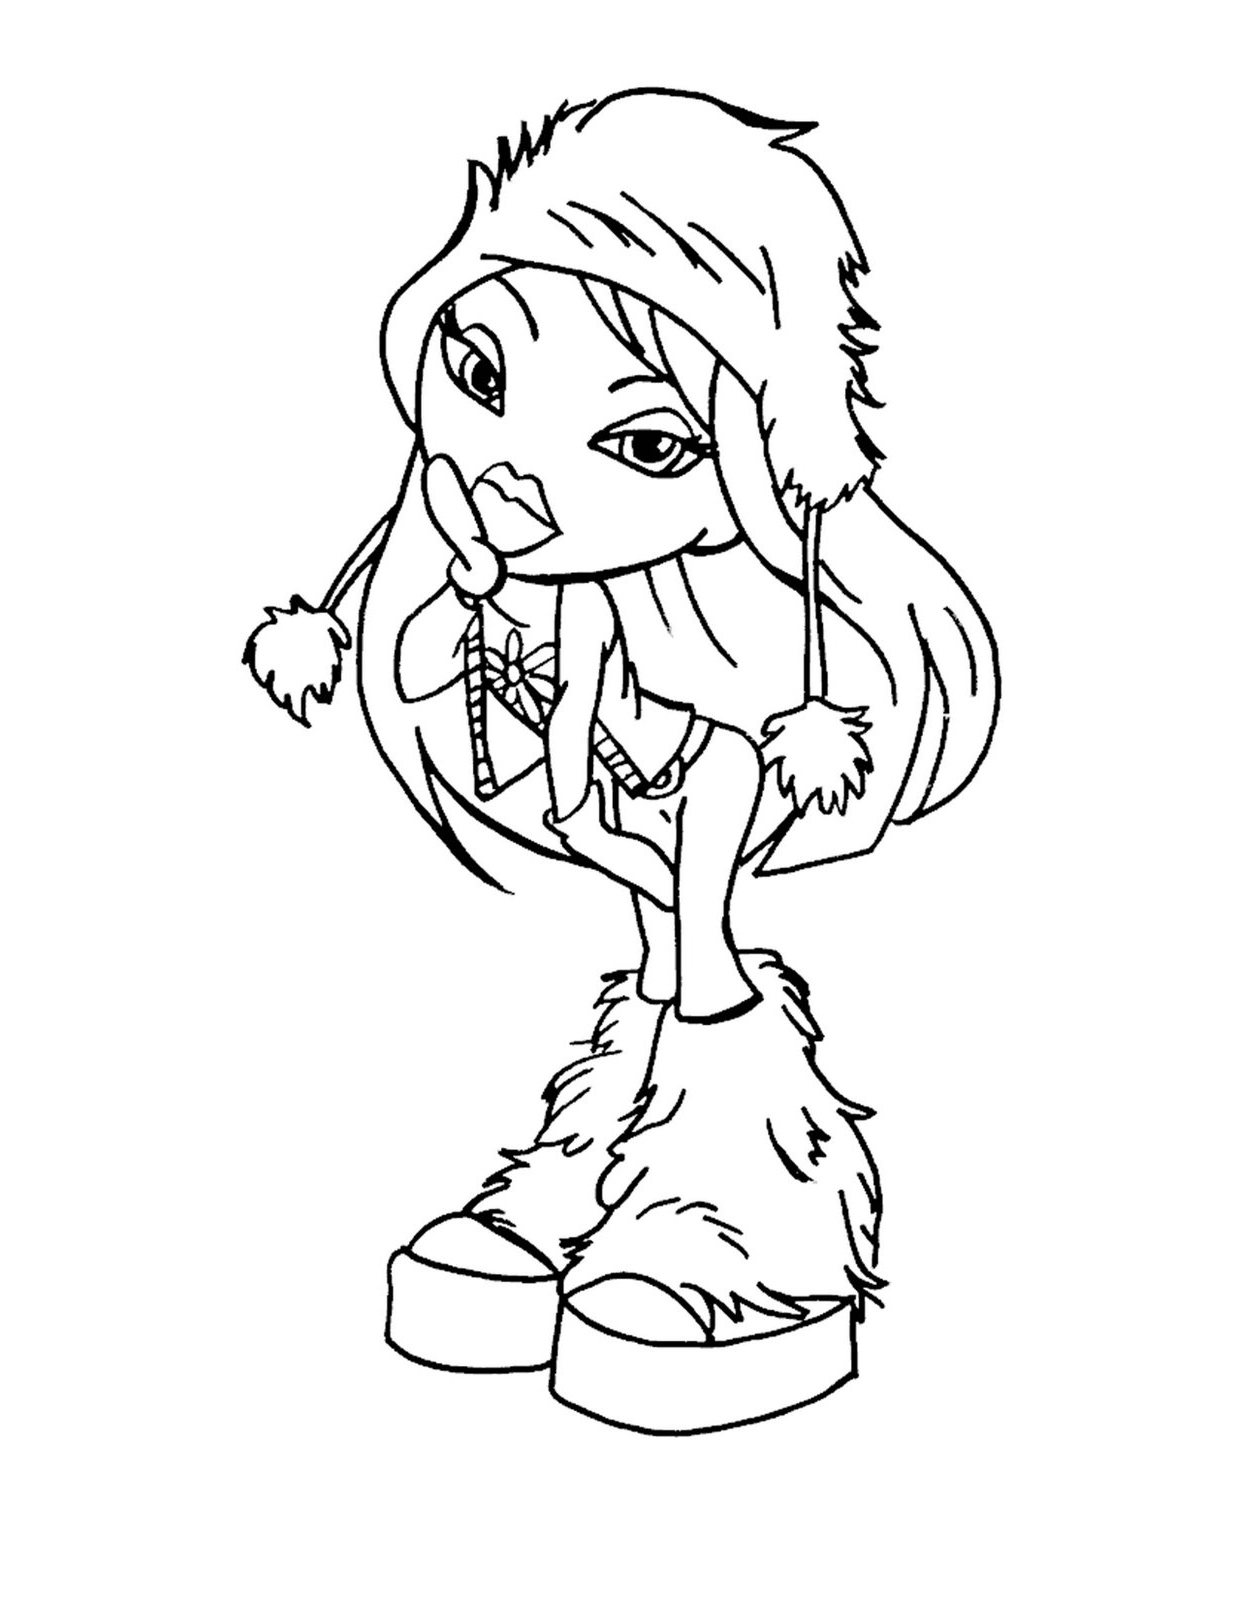 Bratz Barbie Coloring Pages Download And Print For Free